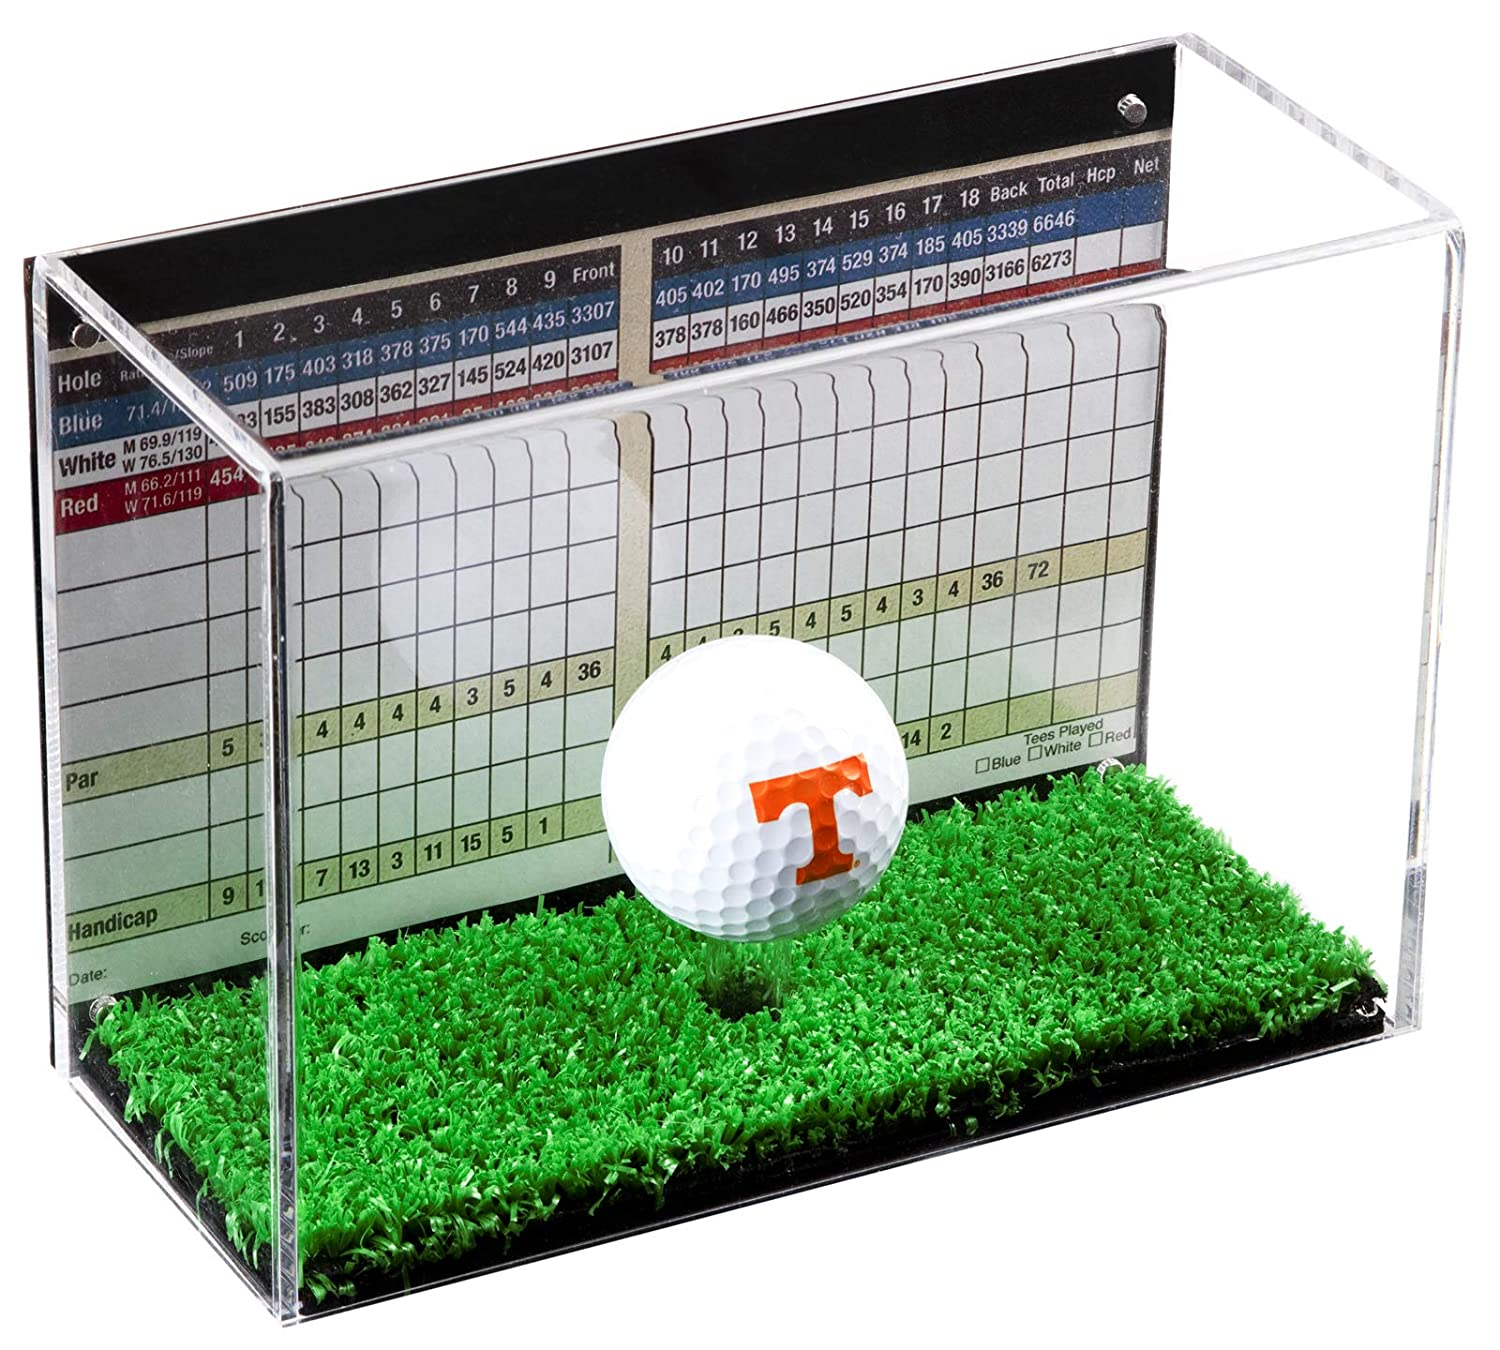 Deluxe Clear Acrylic Golf Memorabilia Display Case with UV Protection with Turf Floor (A045) B06XTQCH2Y